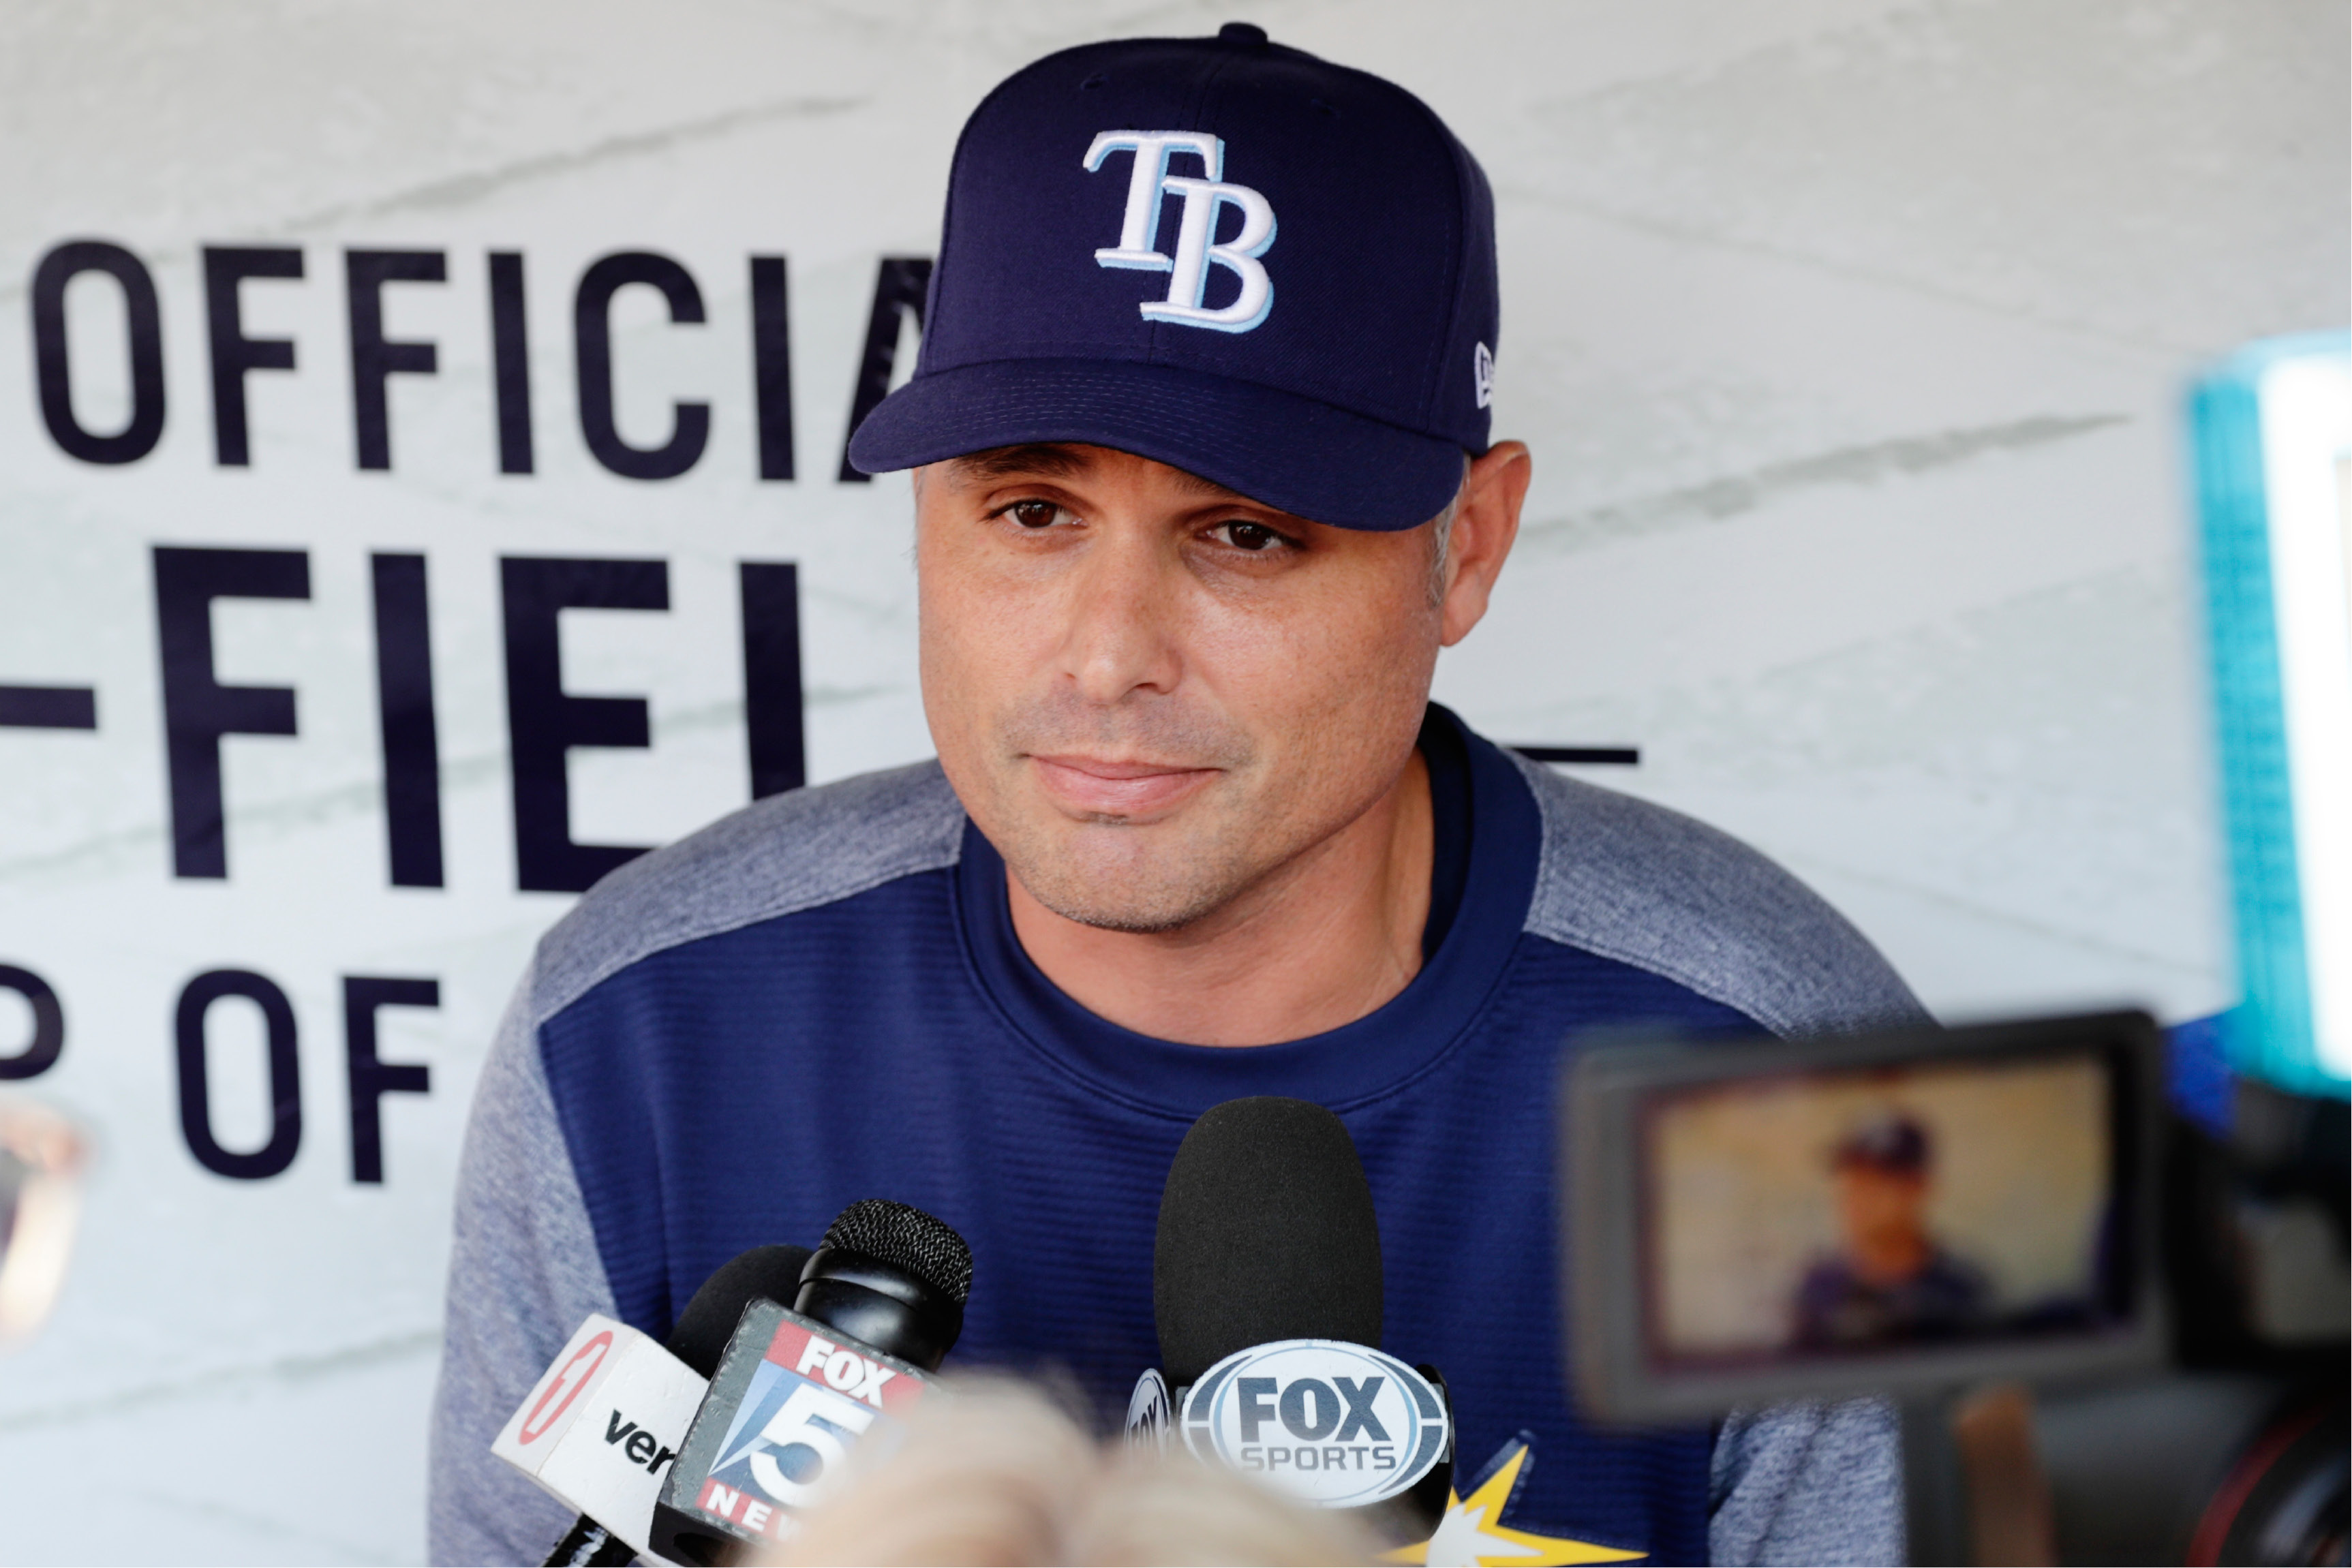 Tampa Bay Rays manager Kevin Cash responds to questions from the media at Citi Field before a baseball game against the New York Yankees, Monday, Sept. 11, 2017, in New York. The Yankees will be the visiting team for the series moved from St. Petersburg, Florida, because of Hurricane Irma. (AP Photo/Frank Franklin II)